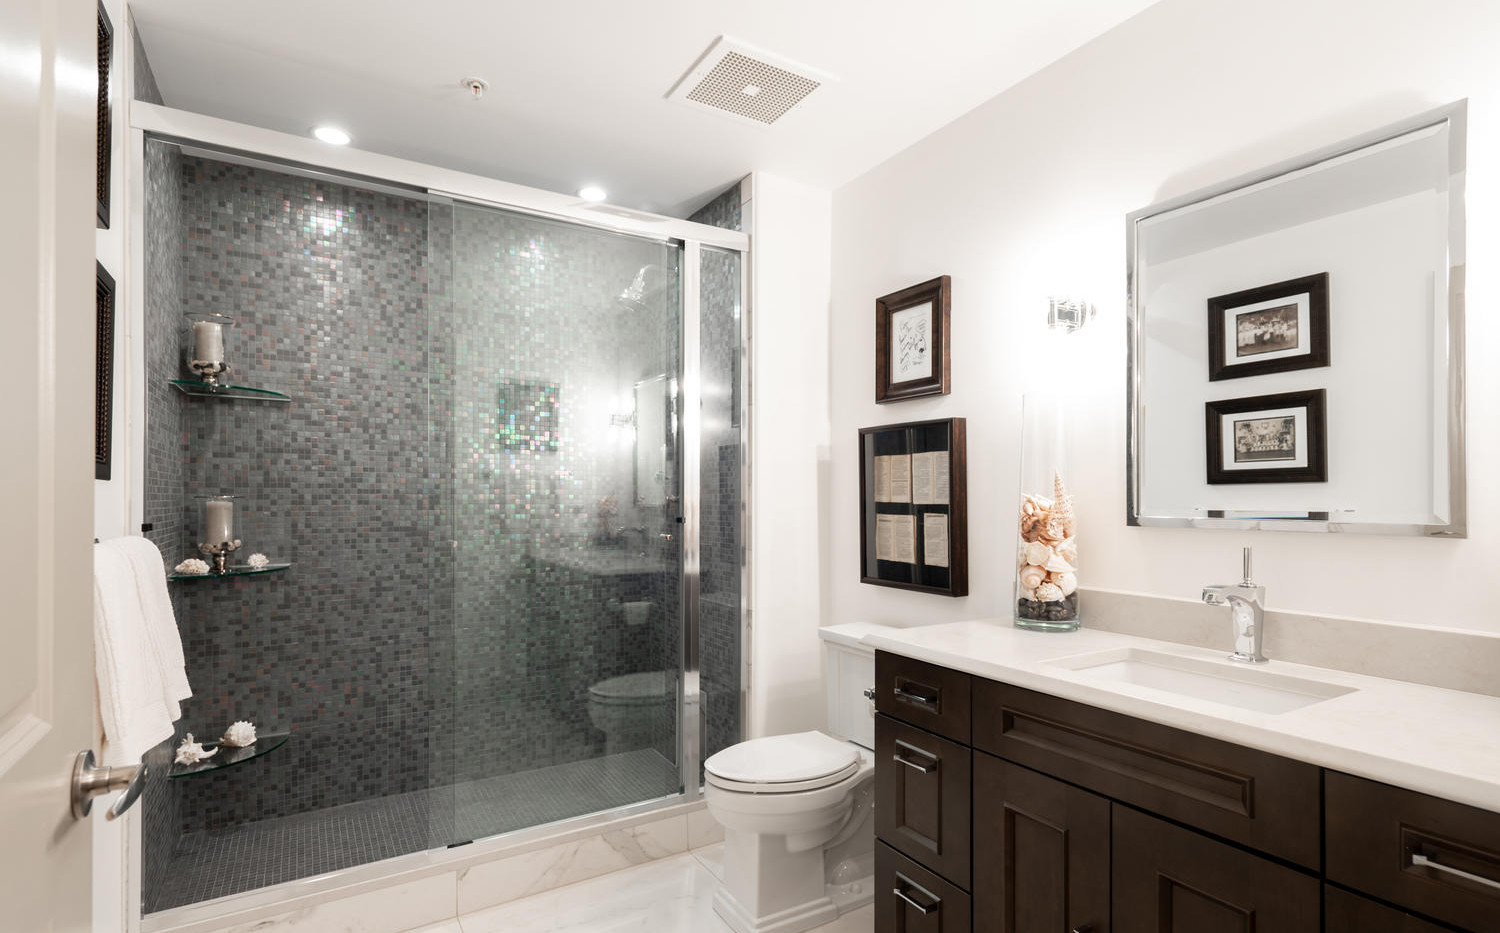 925 Lincoln Street-large-037-036-Bathroo